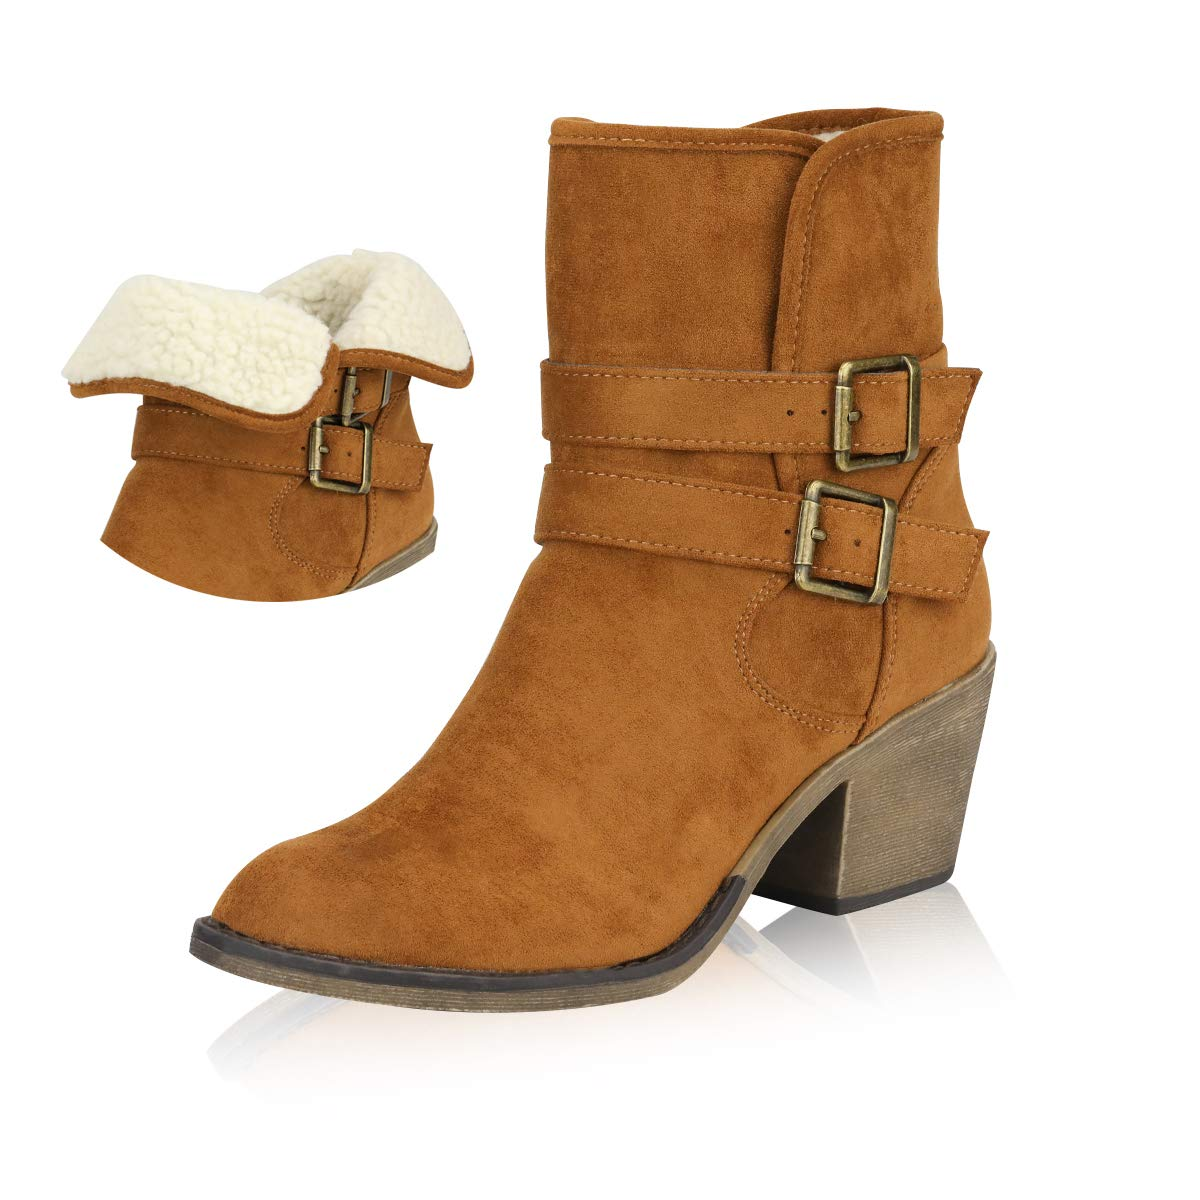 d829f8a91fb Yeviavy Women s Ankle Boots - Western Booties Low Heel Foldable Cuff Side  Zipper and Buckle Straps Design Lynn Brown Micro Suede 6